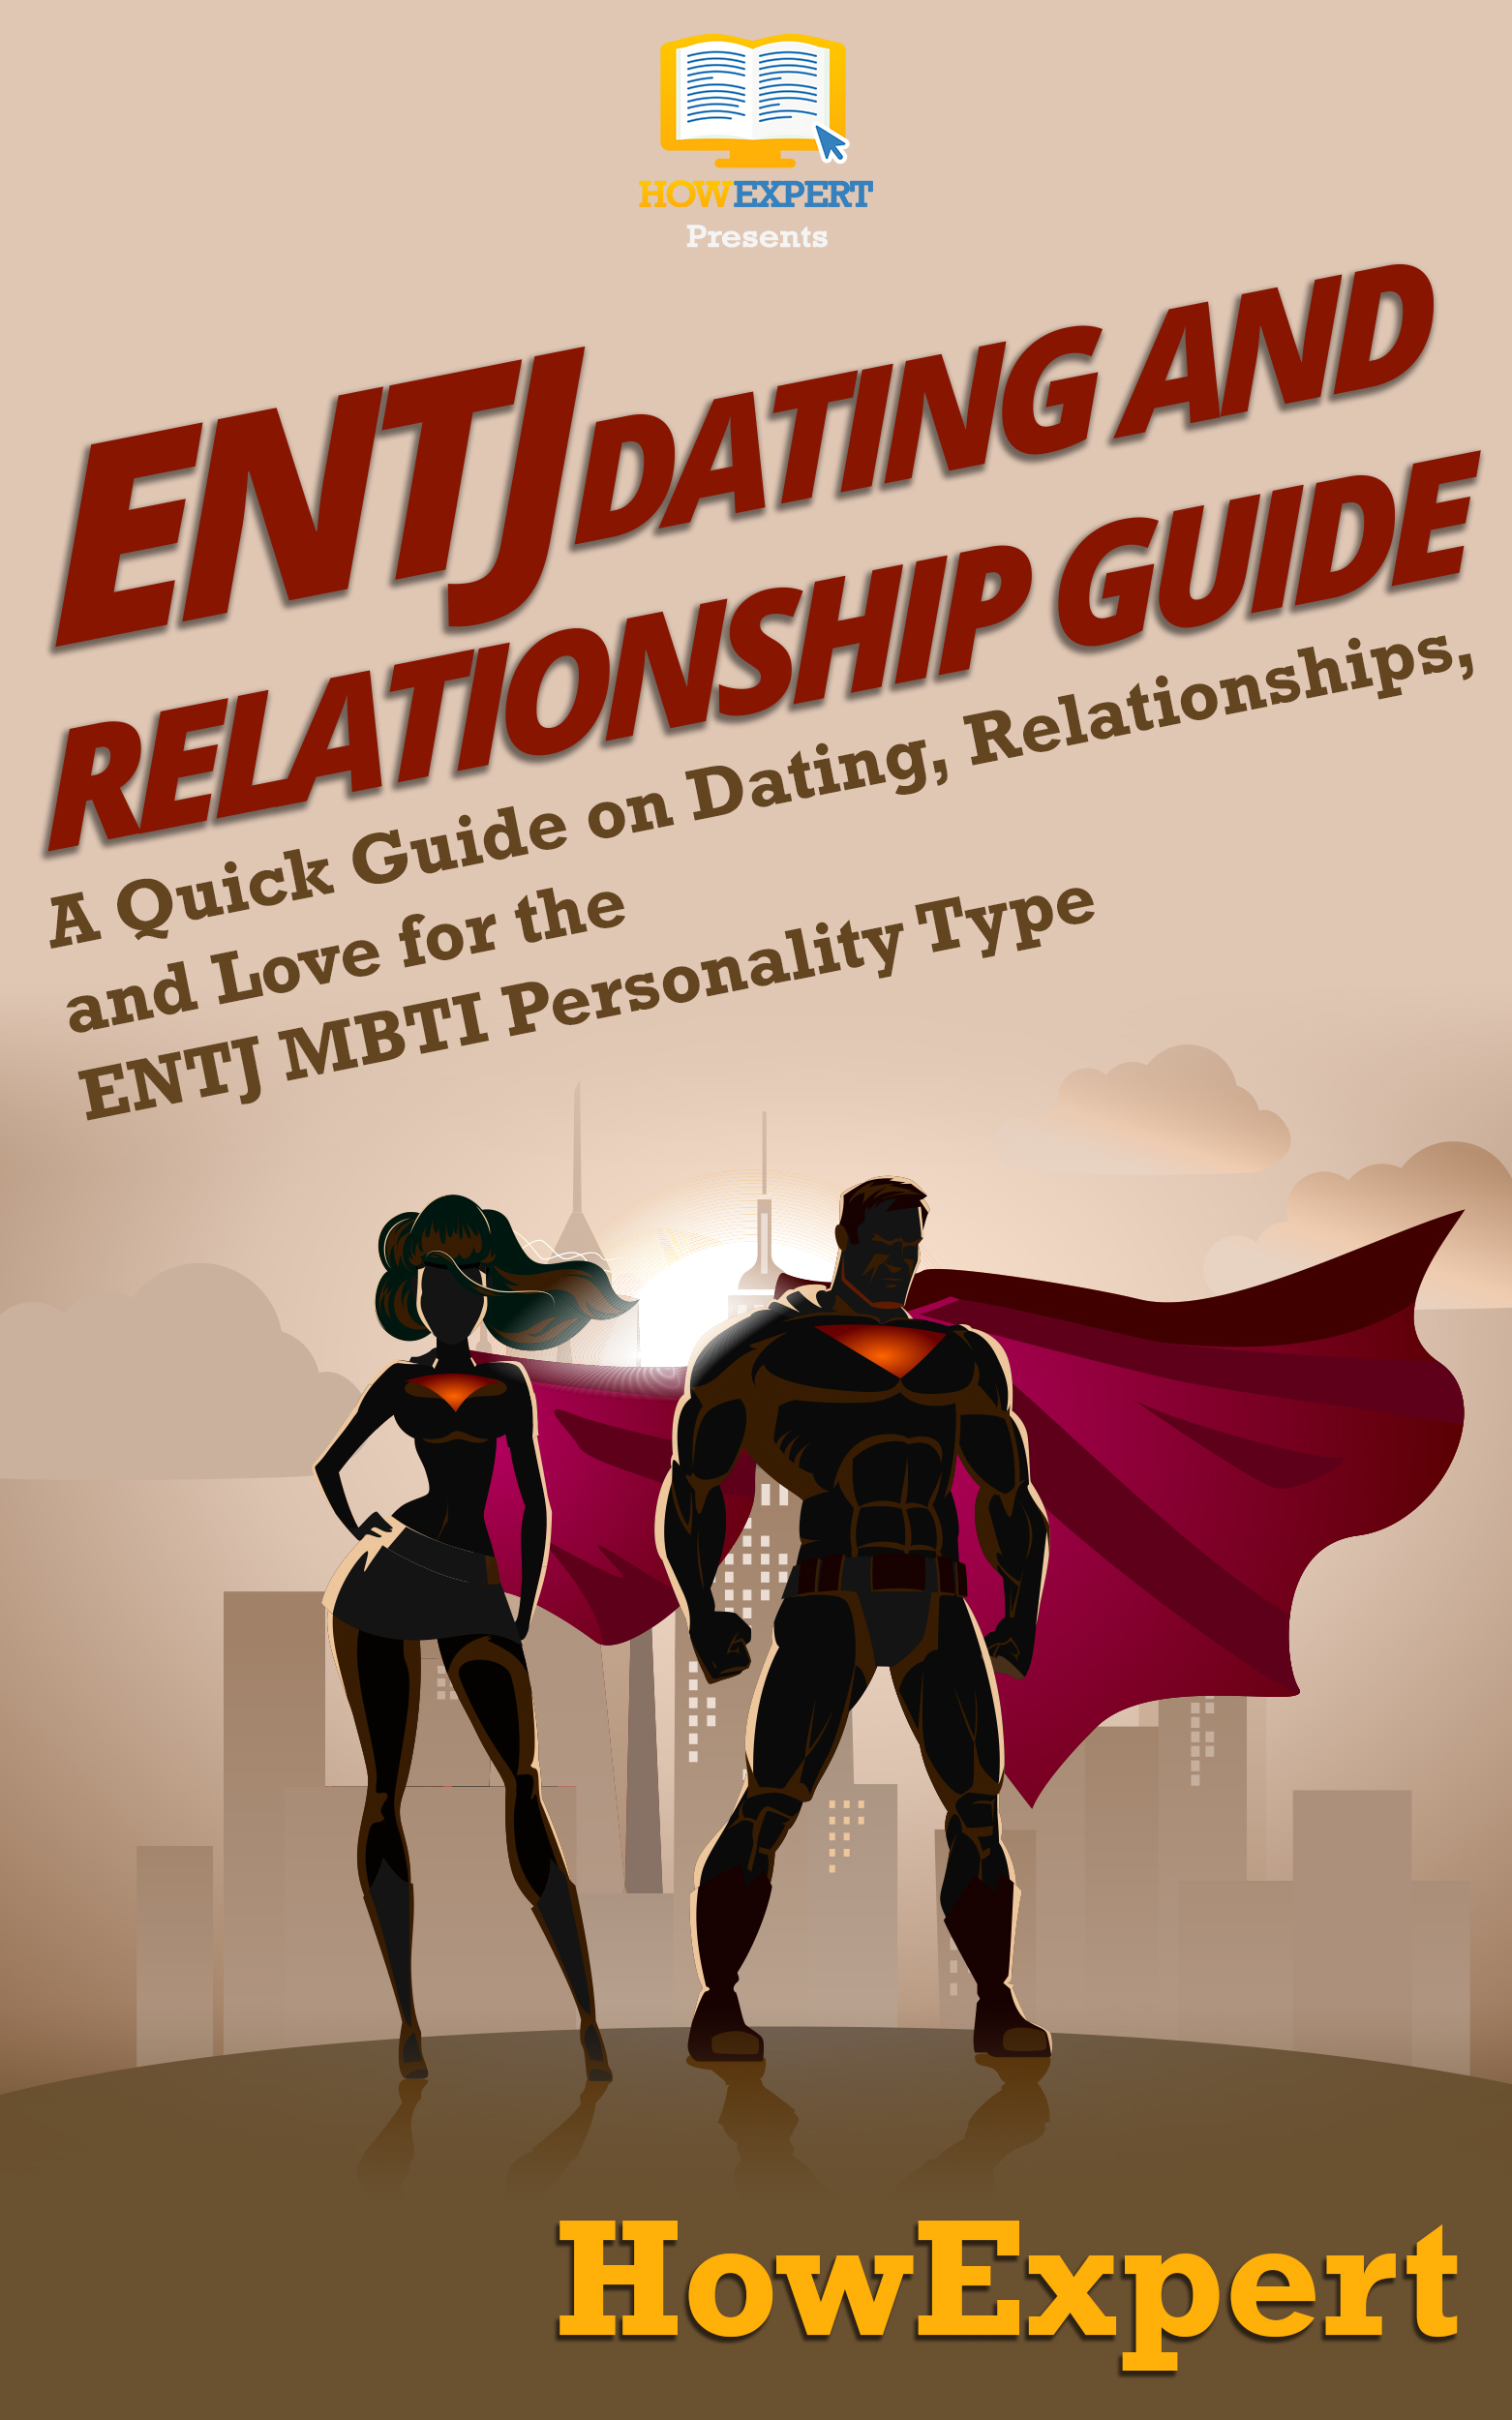 ENTJ Dating and Relationships Guide: A Quick Guide on Dating,  Relationships, and Love for the ENTJ MBTI Personality Type, an Ebook by  HowExpert